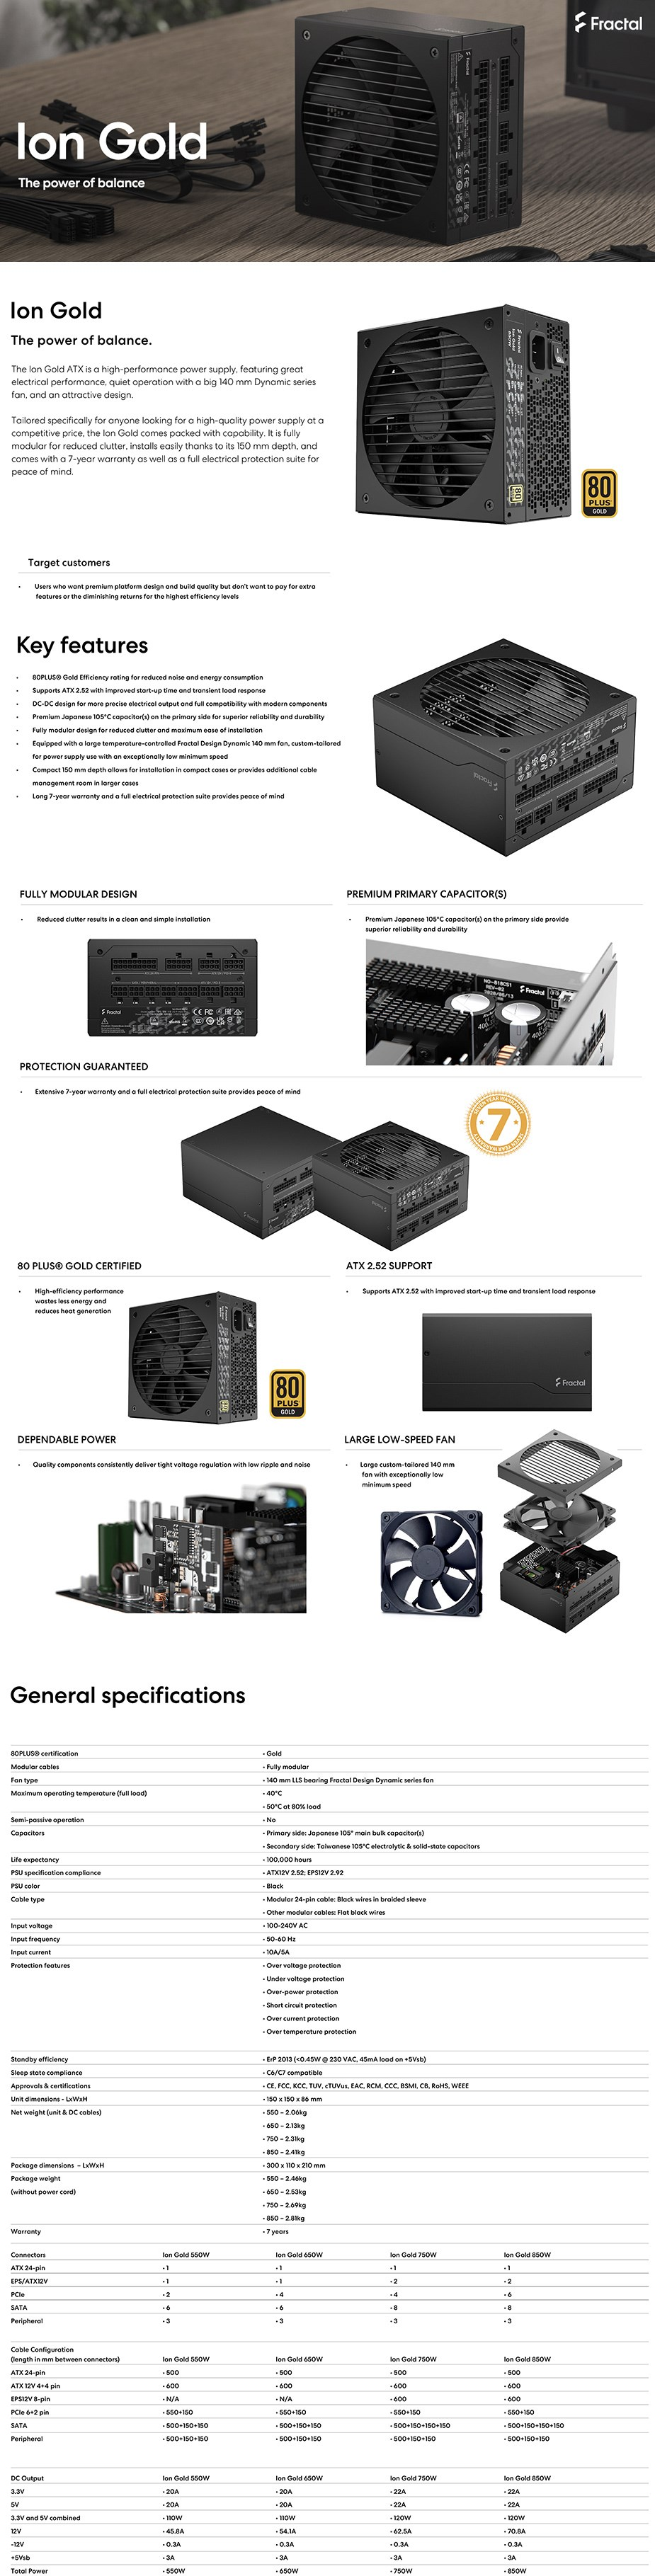 A large marketing image providing additional information about the product Fractal Design Ion Gold 850W Fully Modular 80PLUS Gold Power Supply - Additional alt info not provided